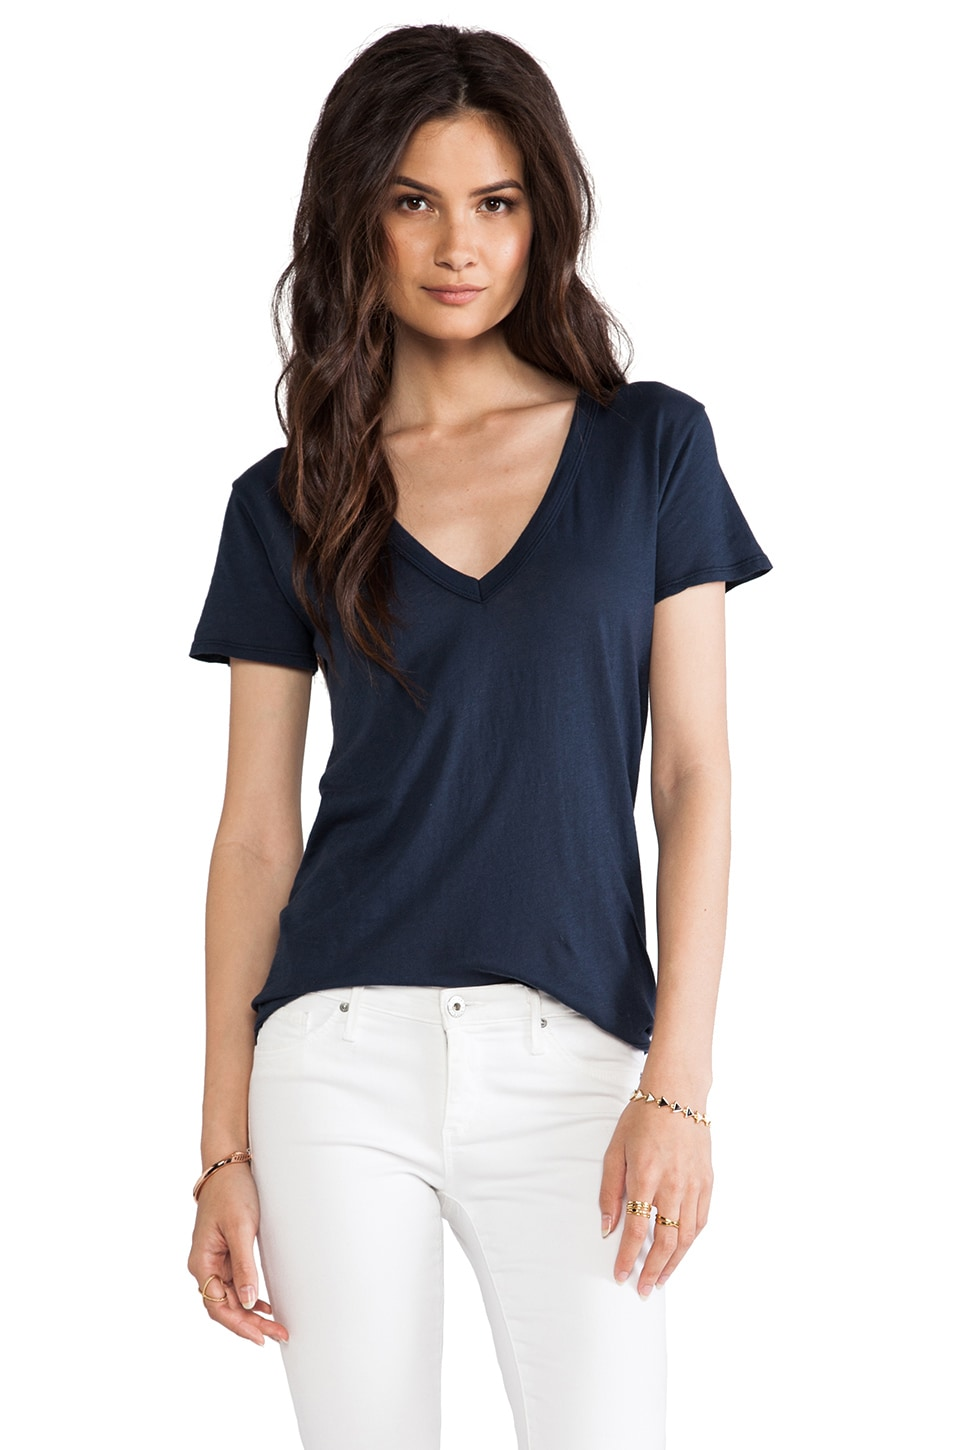 Enza Costa Hi-Lo Short Sleeve V Tee in Indigo